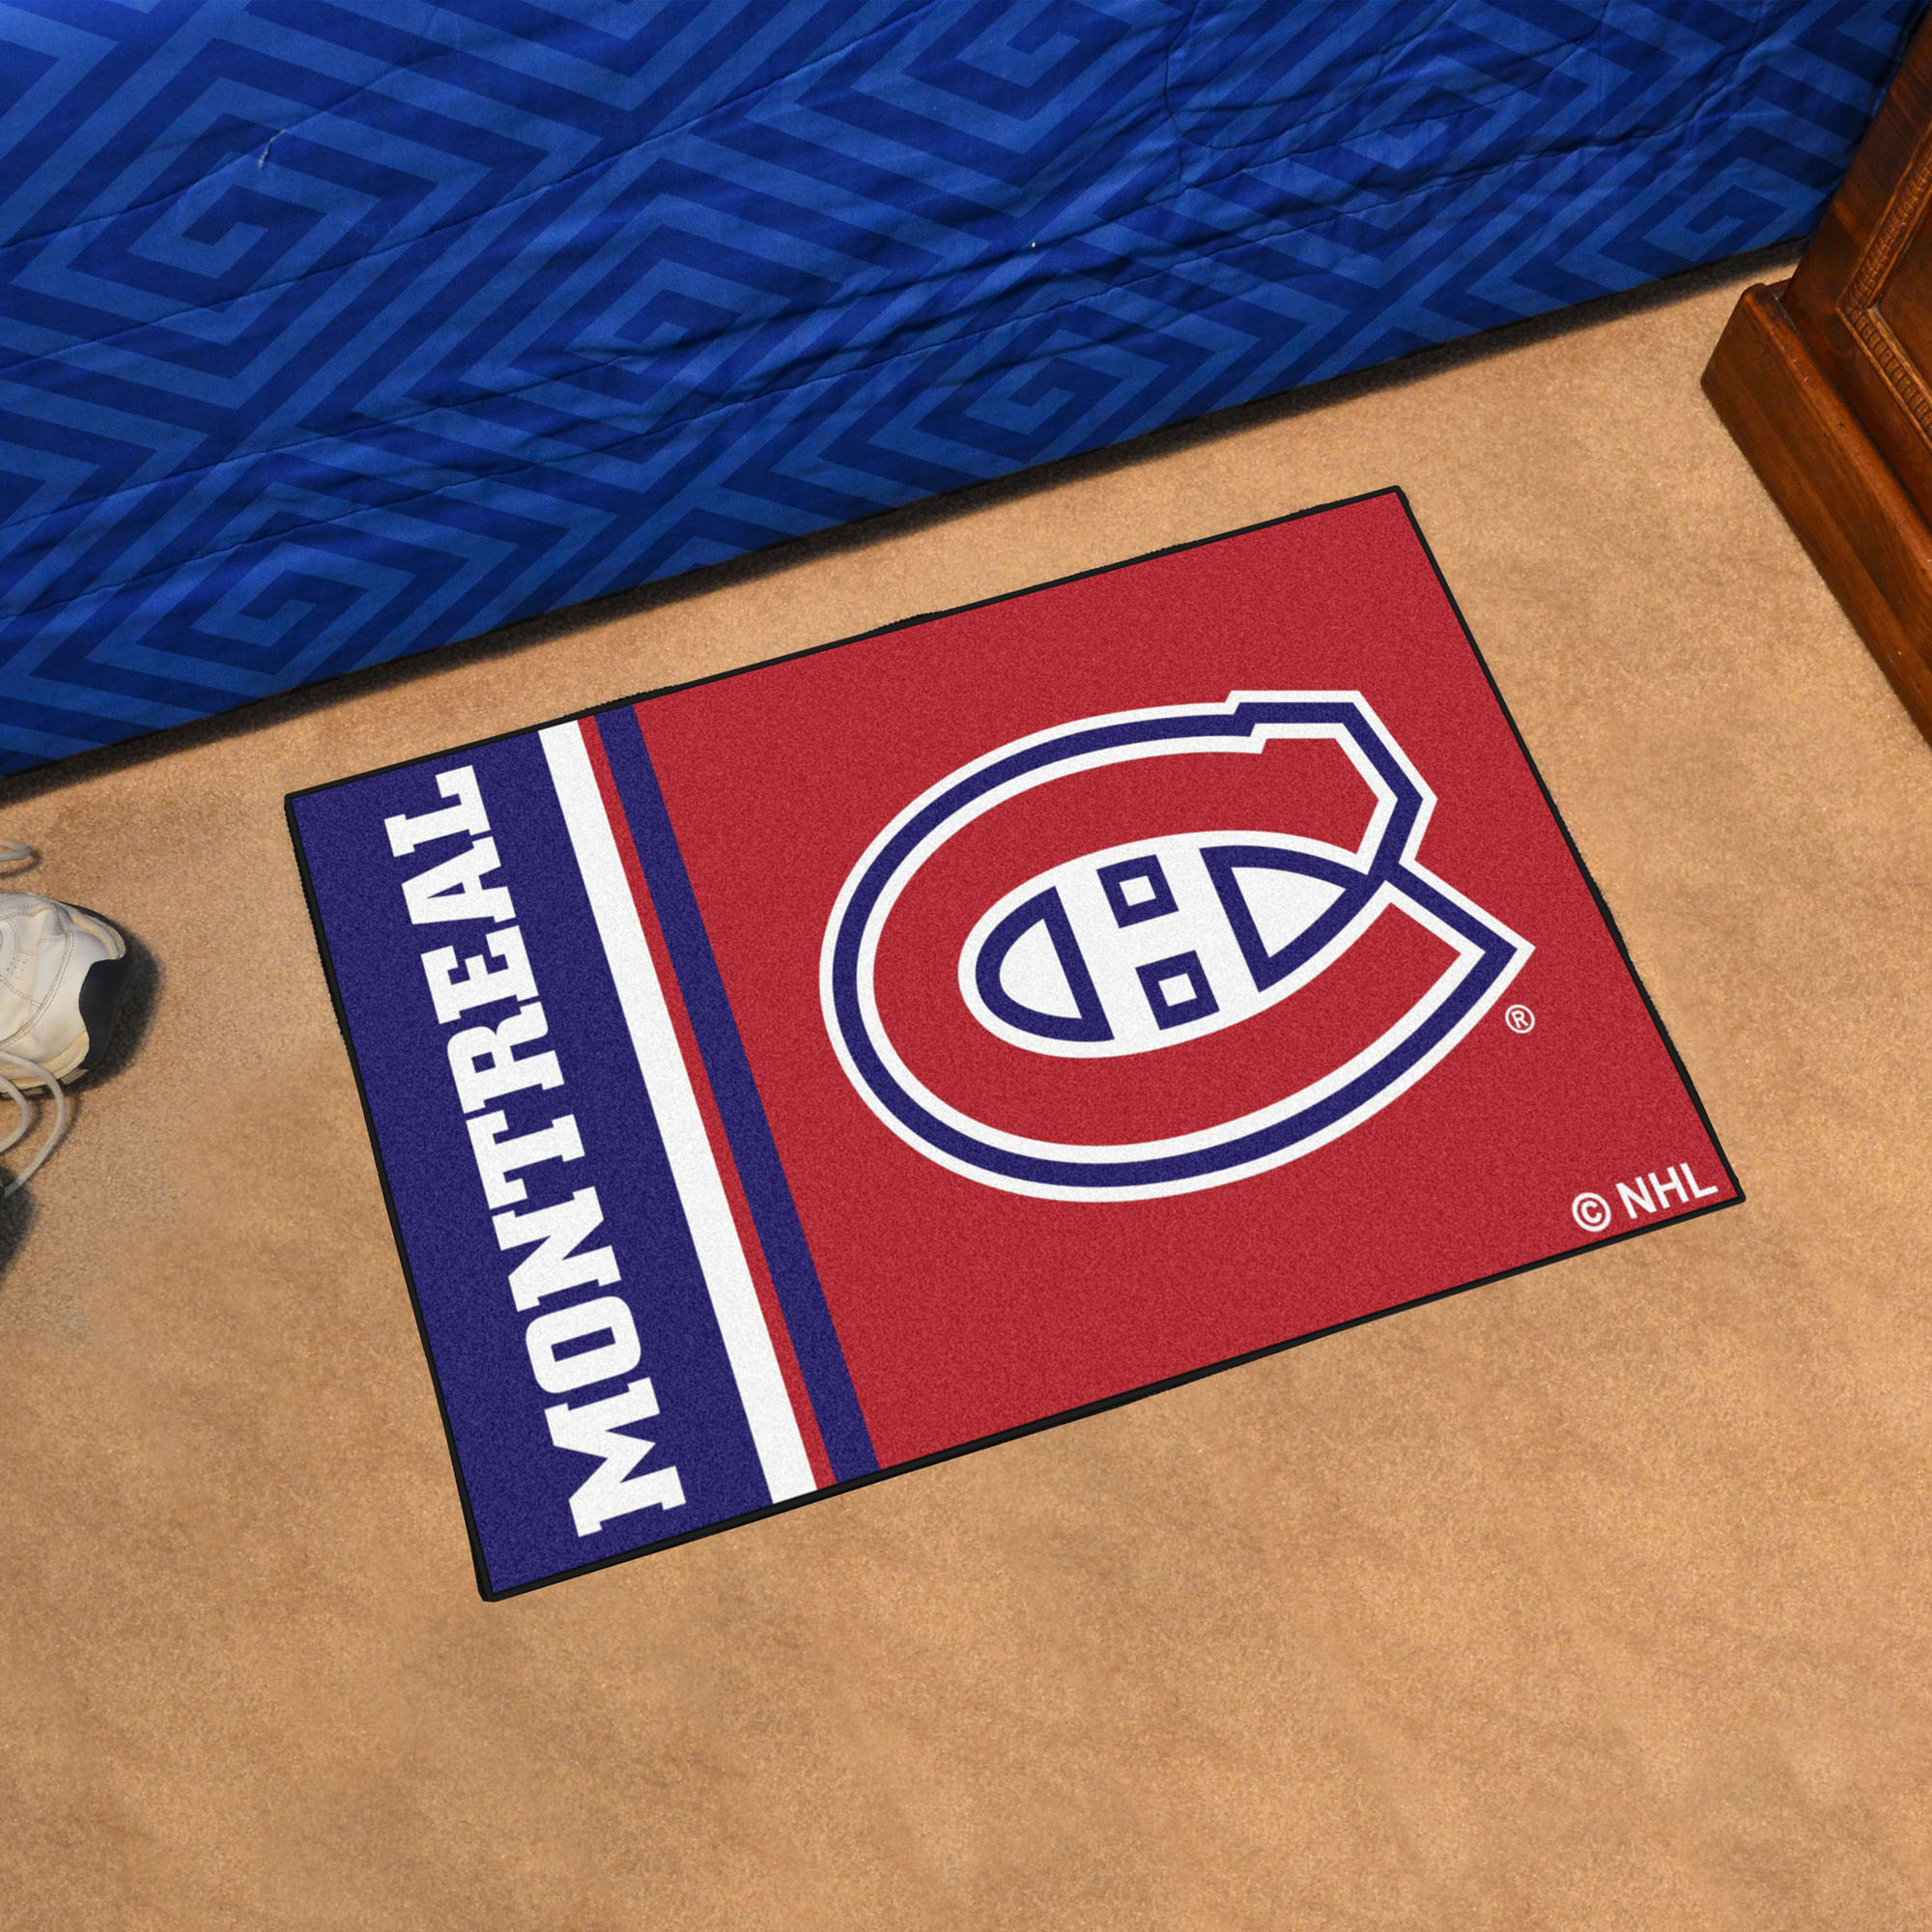 Montreal Canadiens 20 x 30 Uniform Inspired Starter Rug